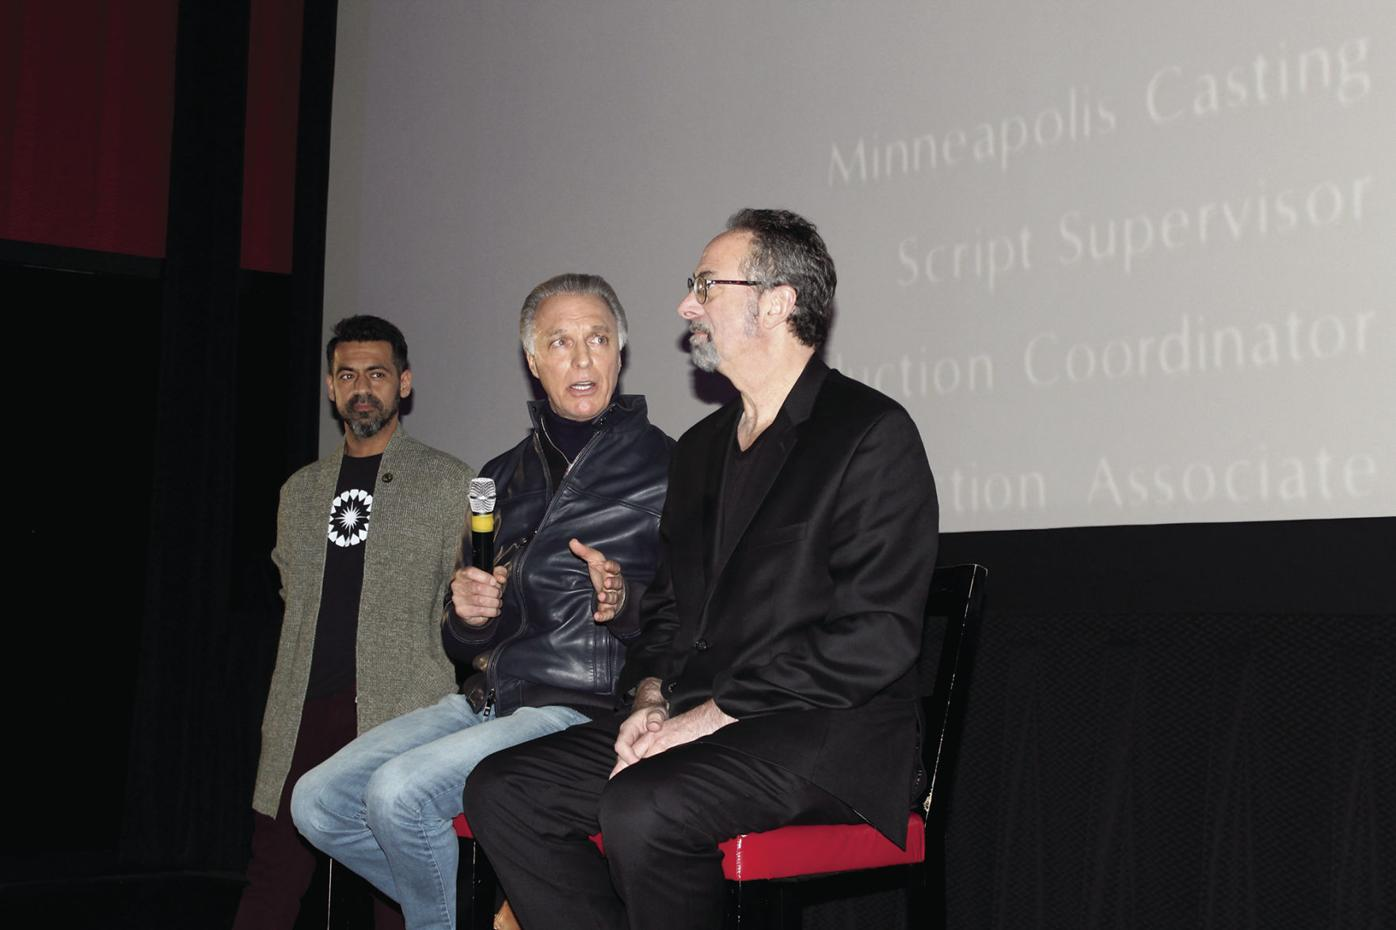 Writer and director of 'Purple Rain' celebrates film's 35th anniversary with Bobby Z. at St. Louis Park screening - 8